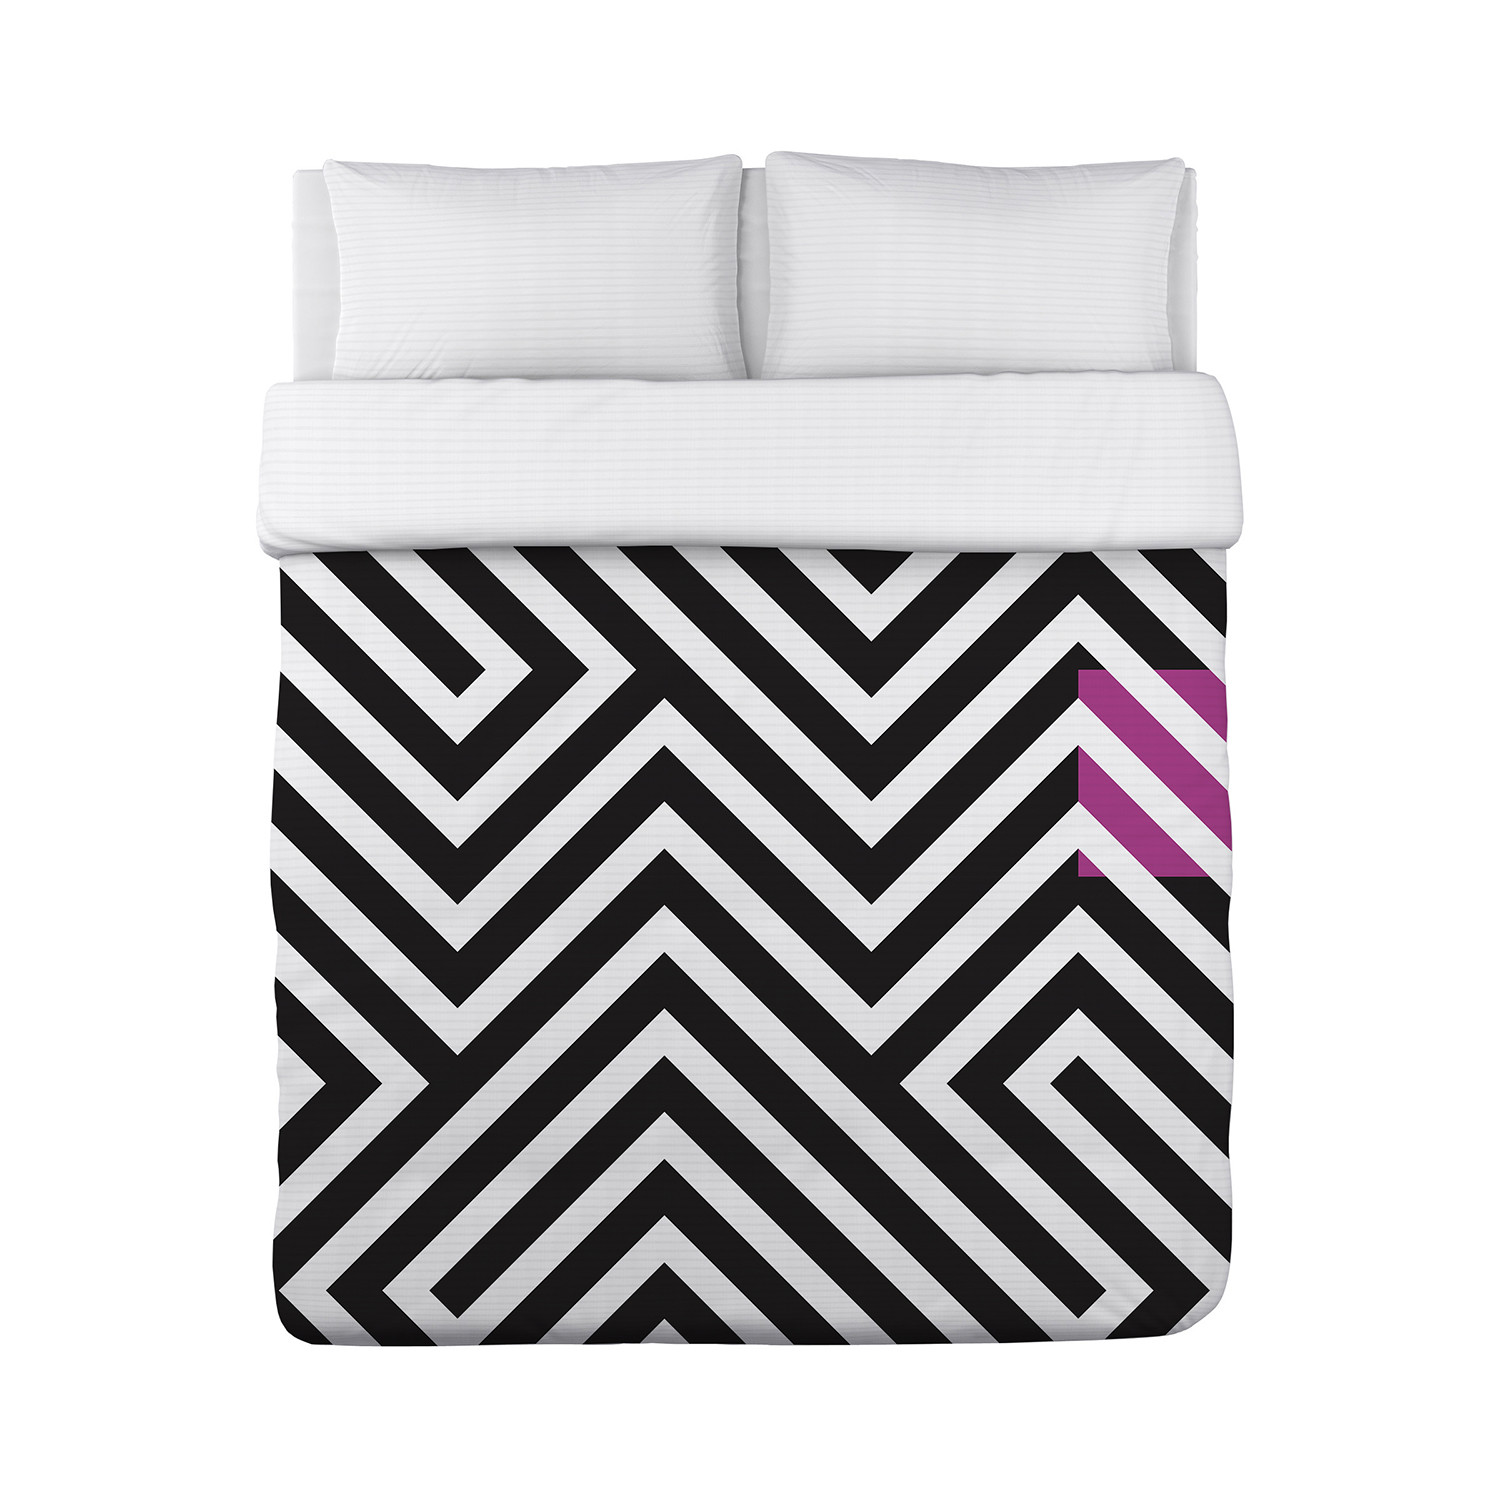 Sti Geometric Duvet Cover Black White Pink Lightweight King